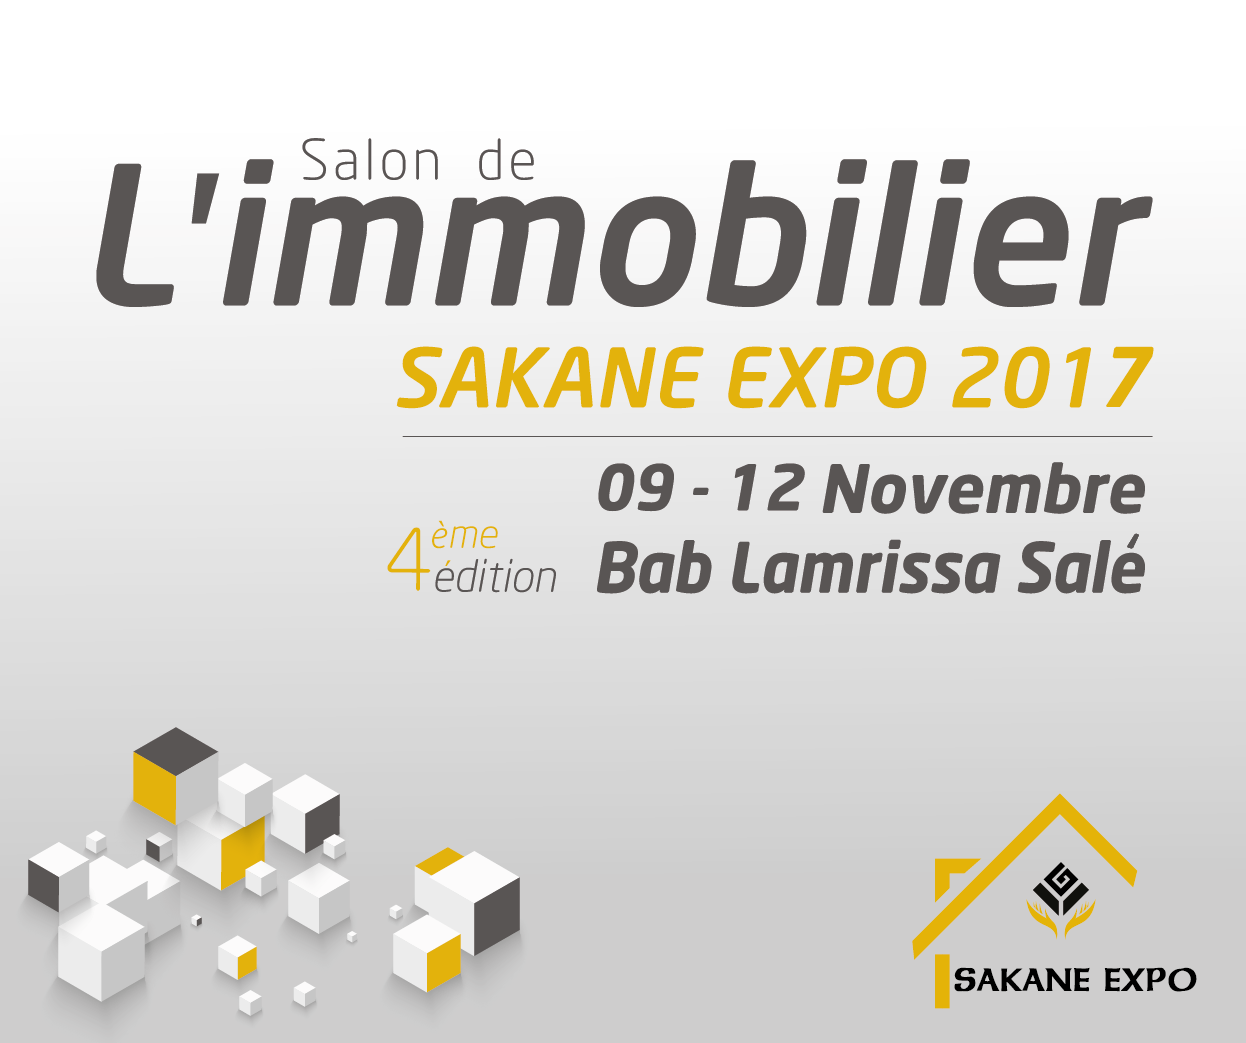 Salon de l'Immobilier SAKANE EXPO